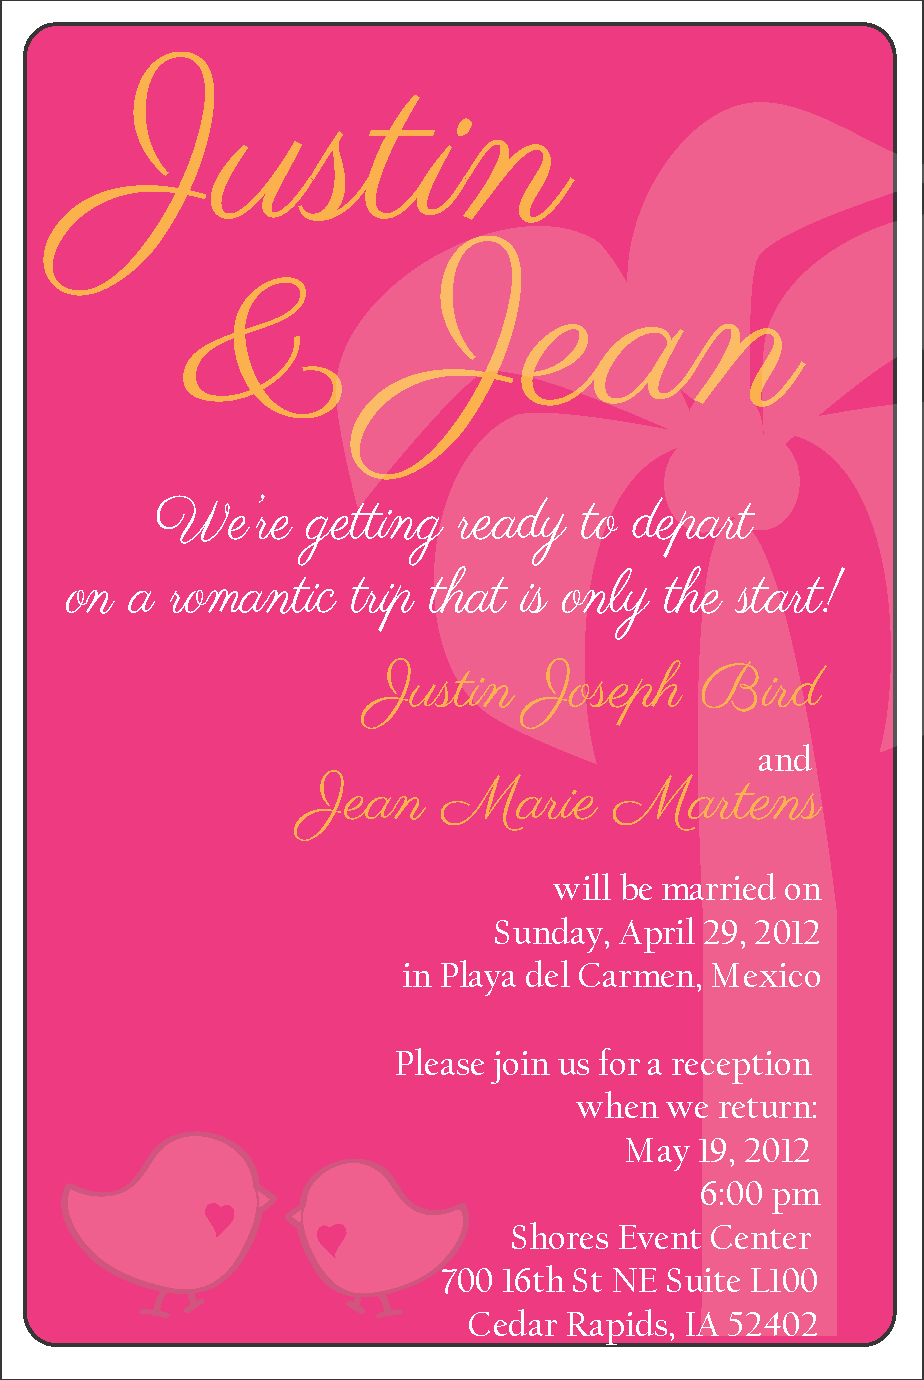 This was the invitation to our reception we held after we came back ...